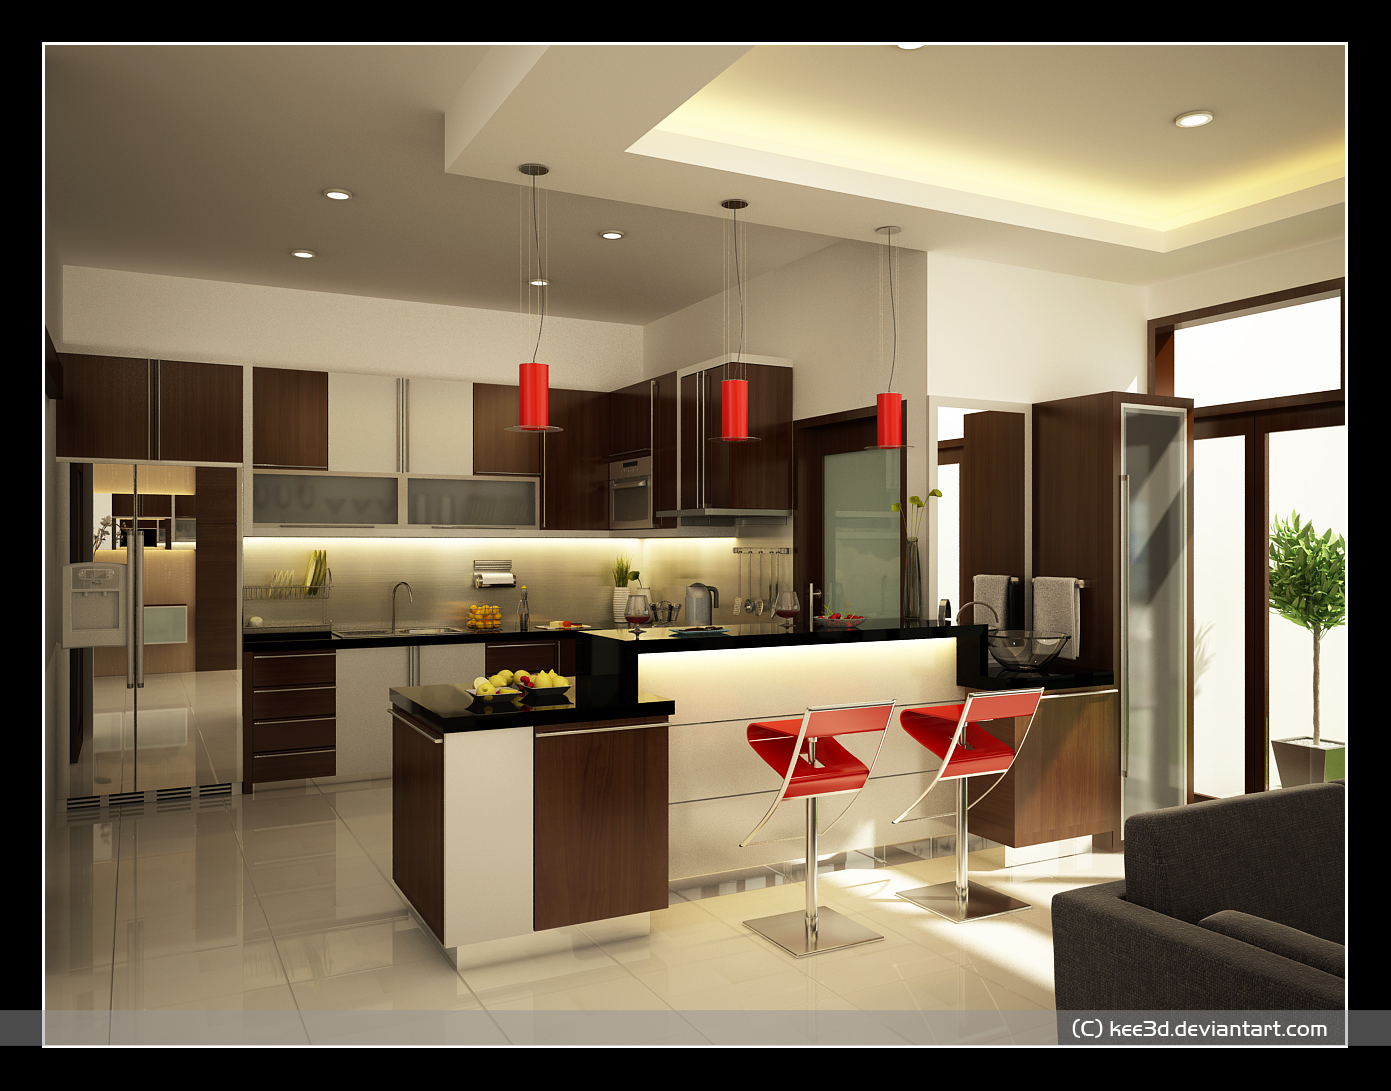 Home interior design decor kitchen design ideas set 2 for Kitchen design and layout ideas